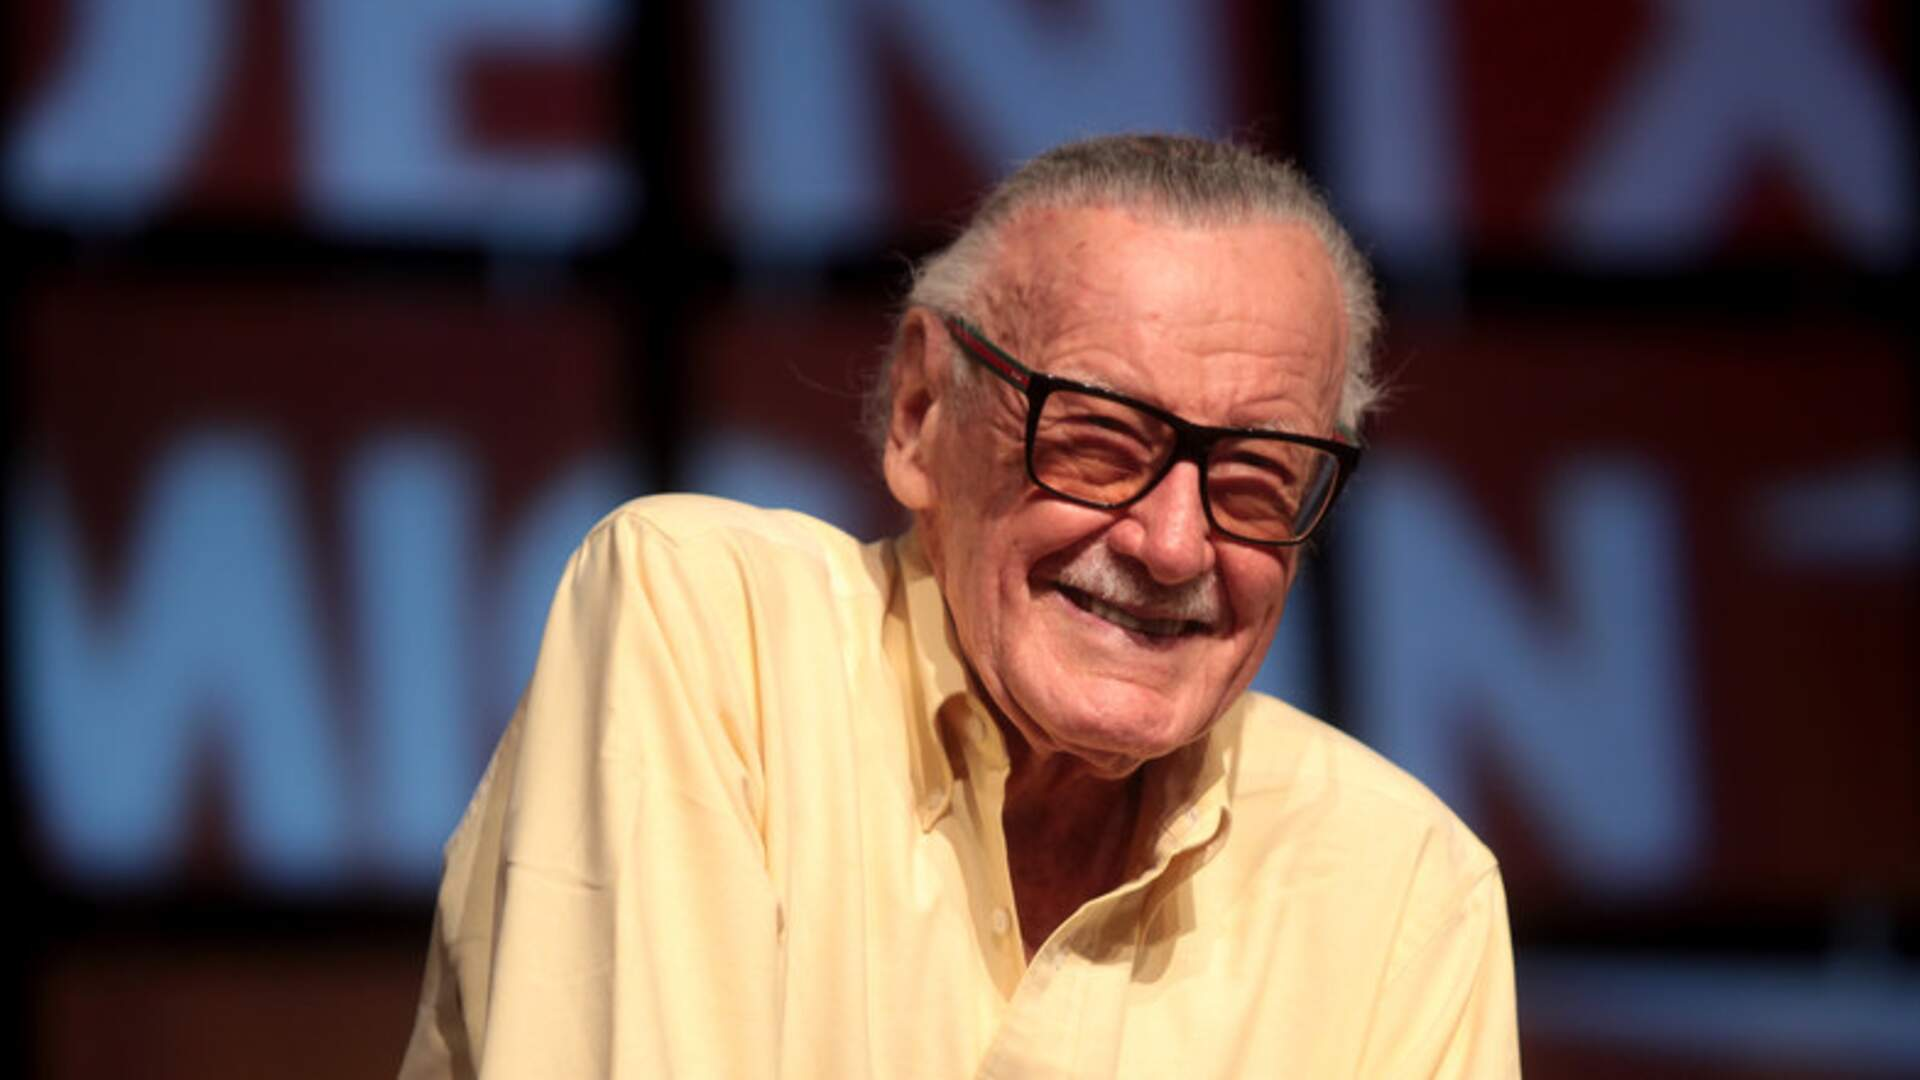 Stan Lee Dead at 95: The Marvel Co-Creator Whose Legacy Includes Gaming as Much as Comics